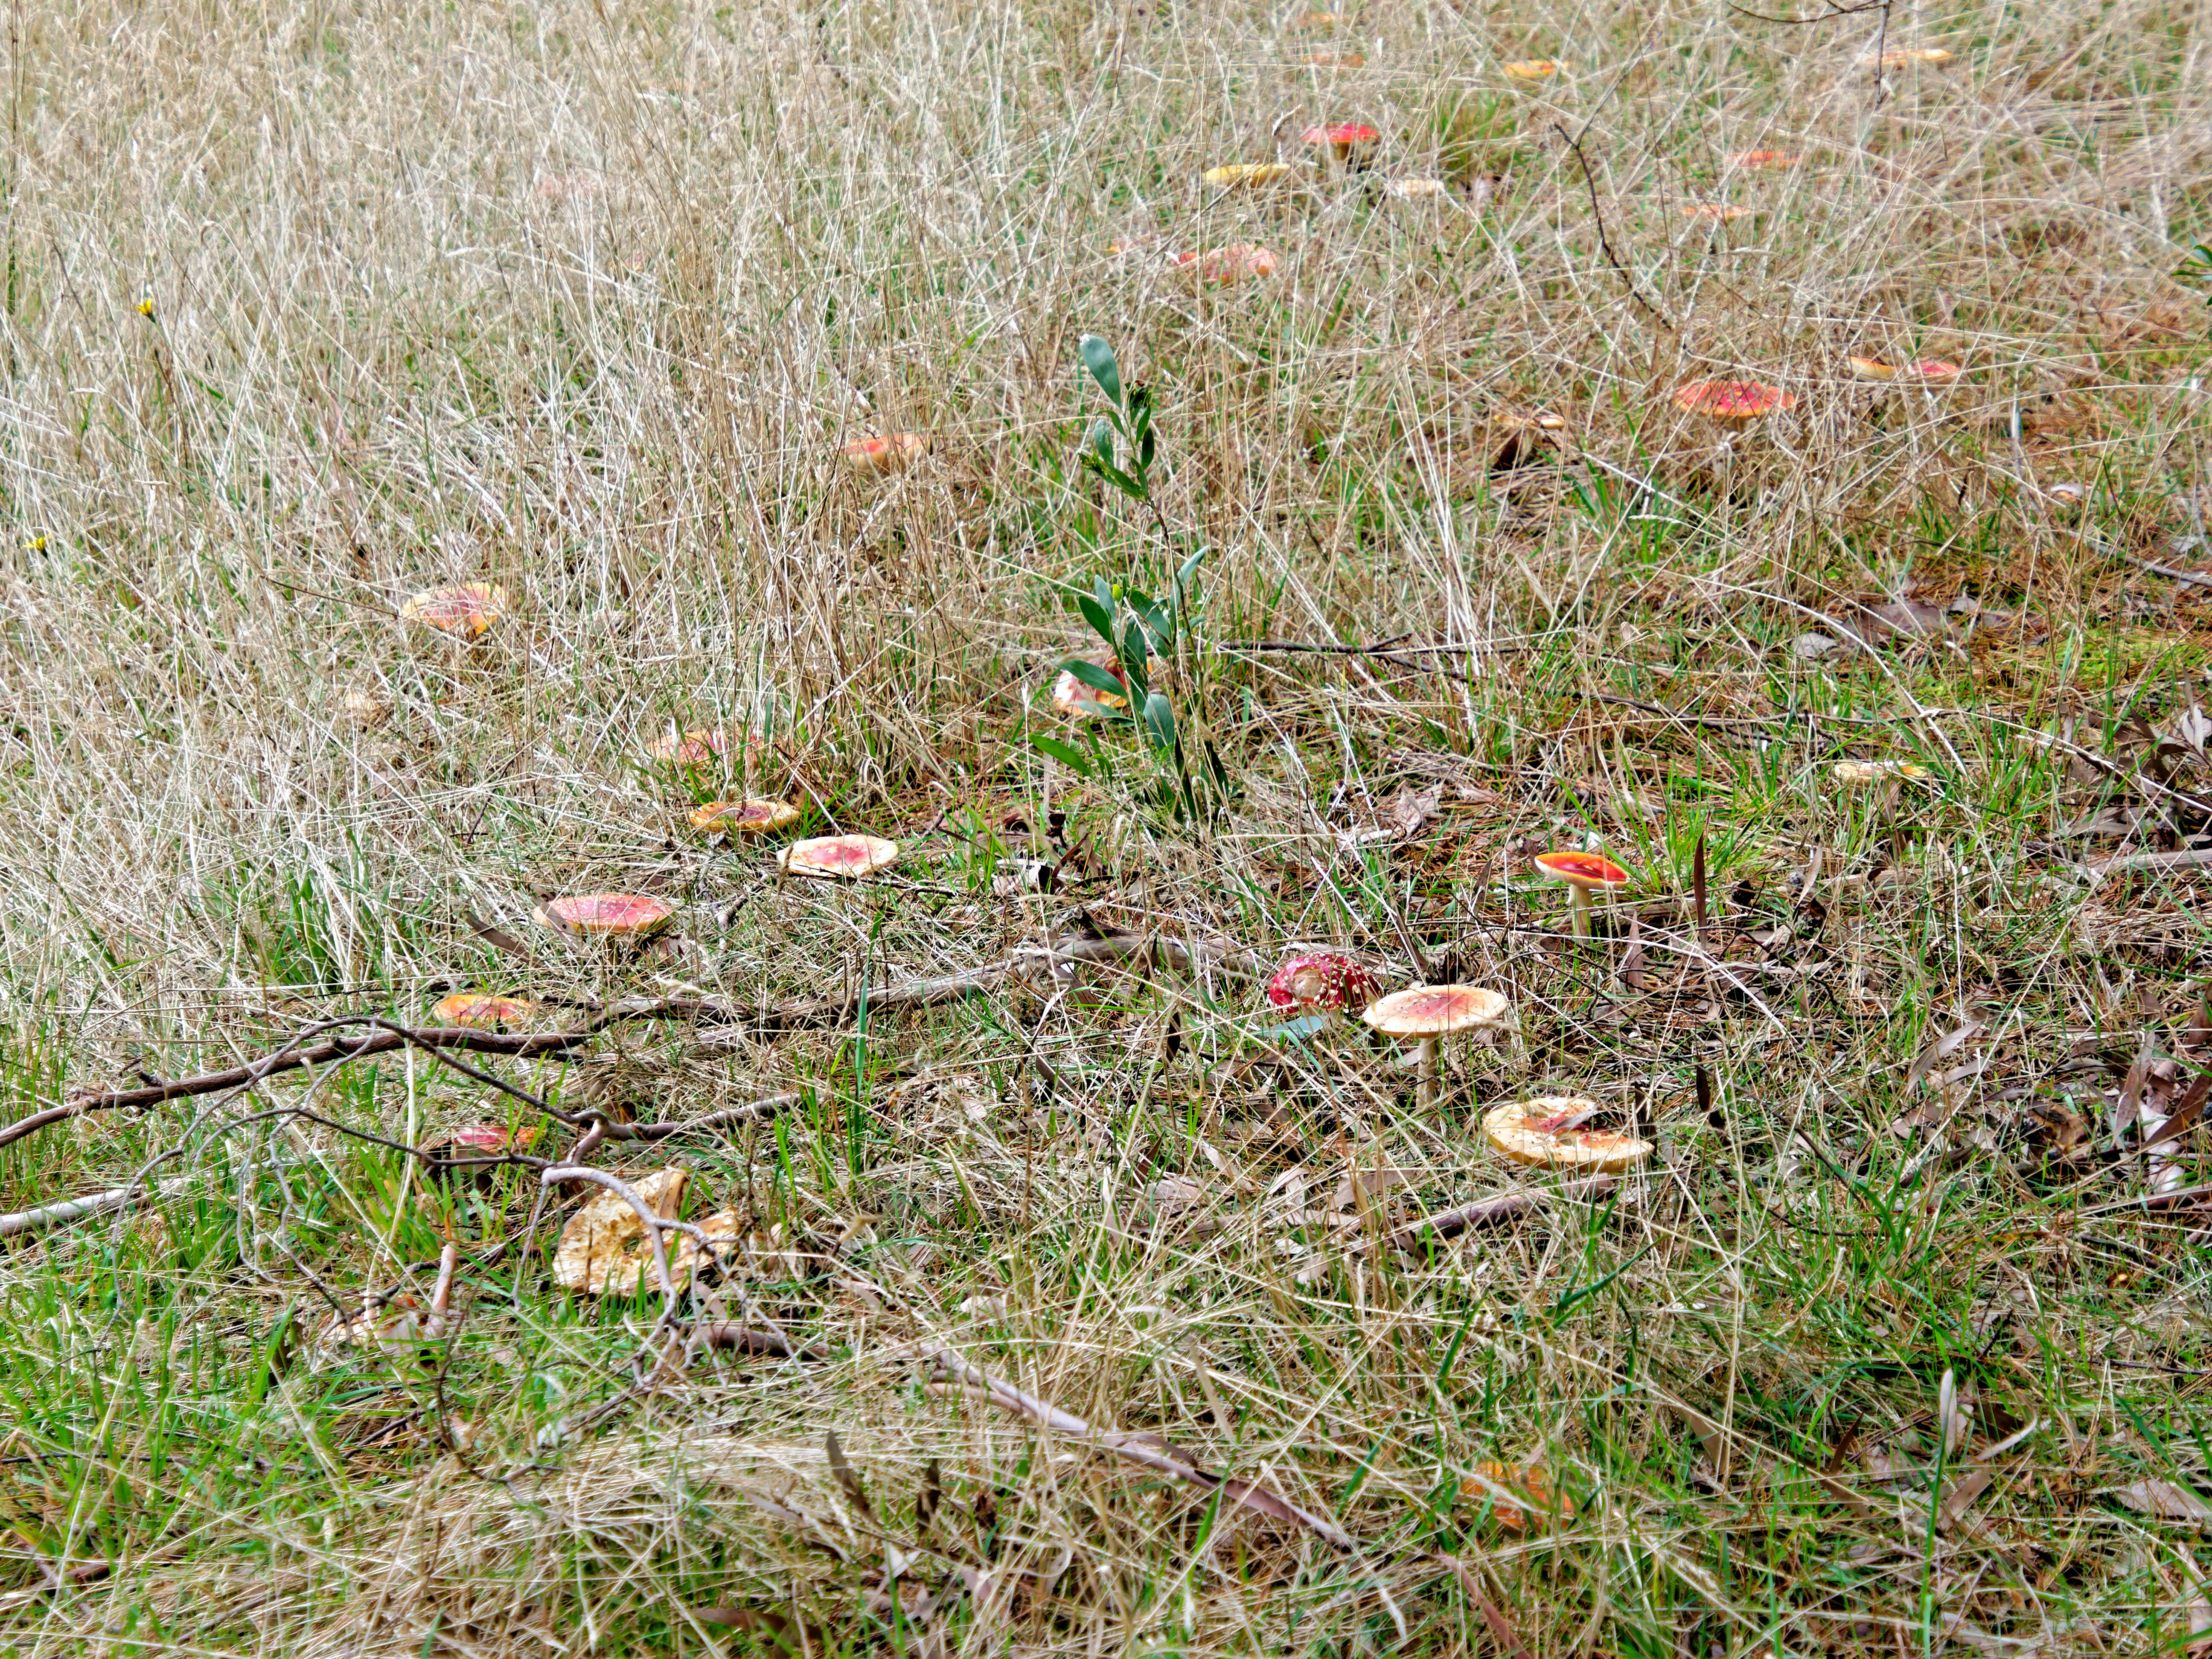 This should be Amanita-muscaria-3.jpeg.  Is it missing?